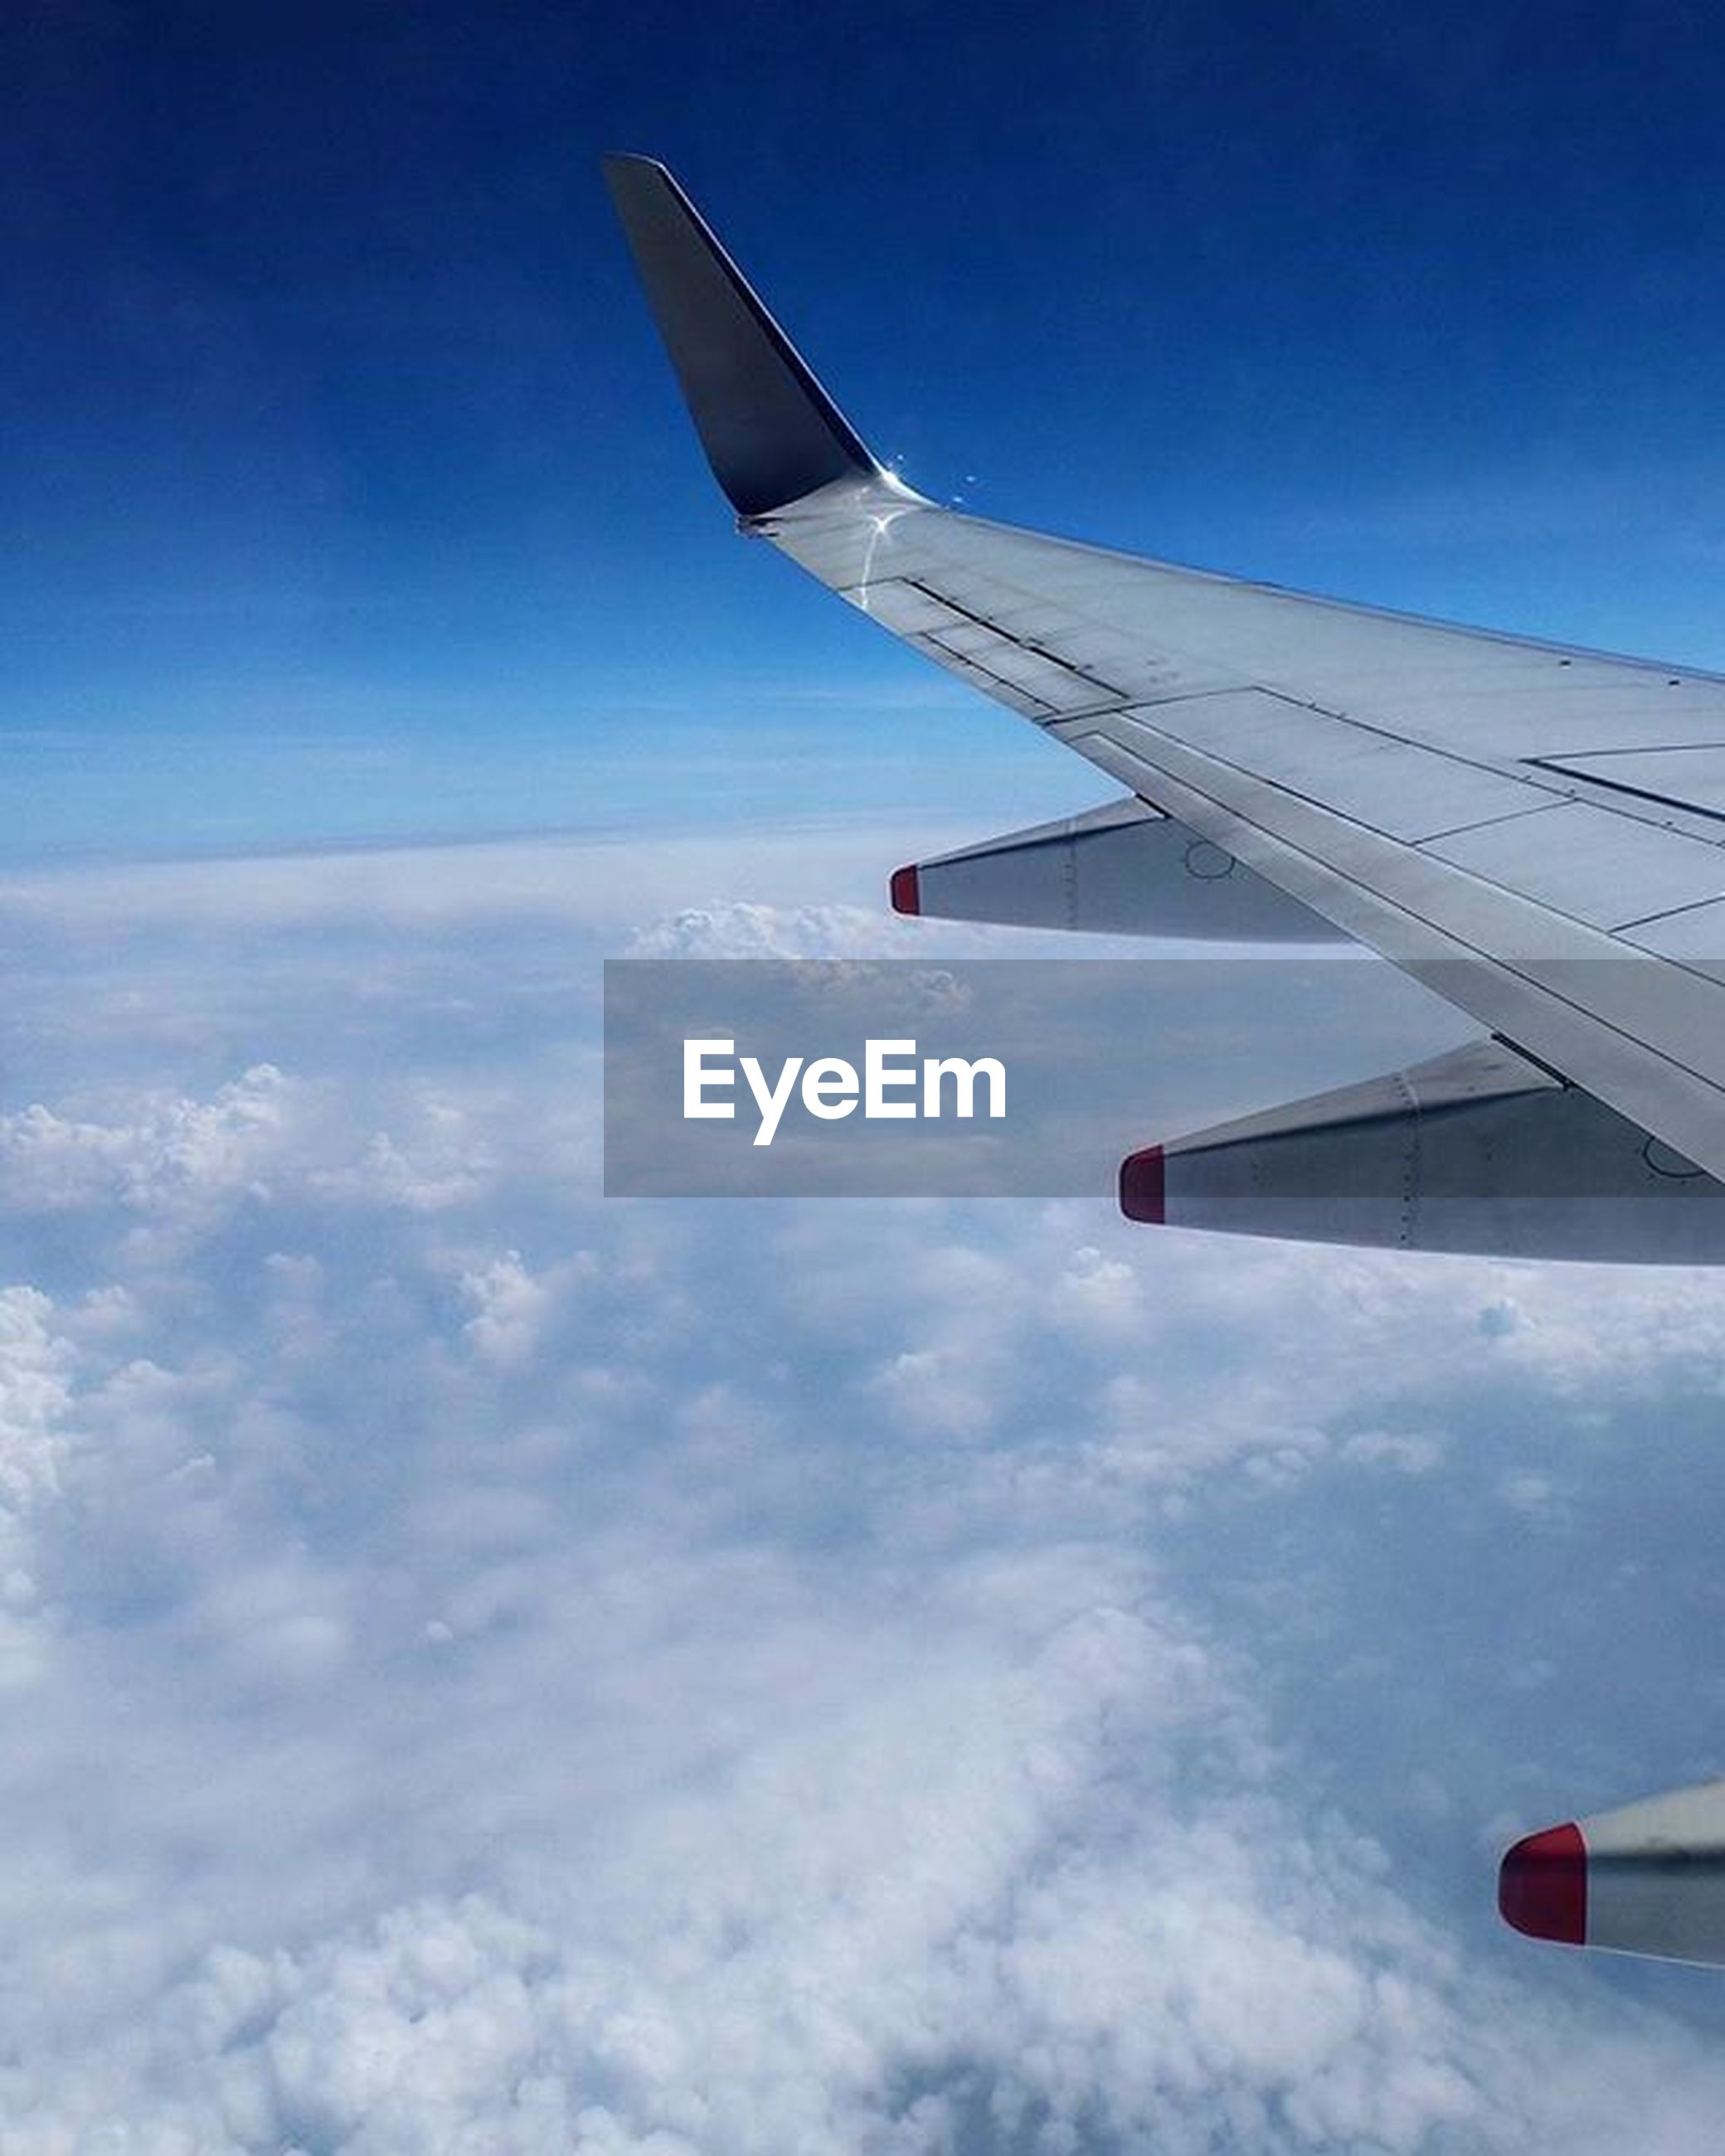 airplane, aircraft wing, flying, air vehicle, transportation, mode of transport, part of, cropped, mid-air, aerial view, travel, journey, sky, on the move, blue, public transportation, scenics, airplane wing, landscape, beauty in nature